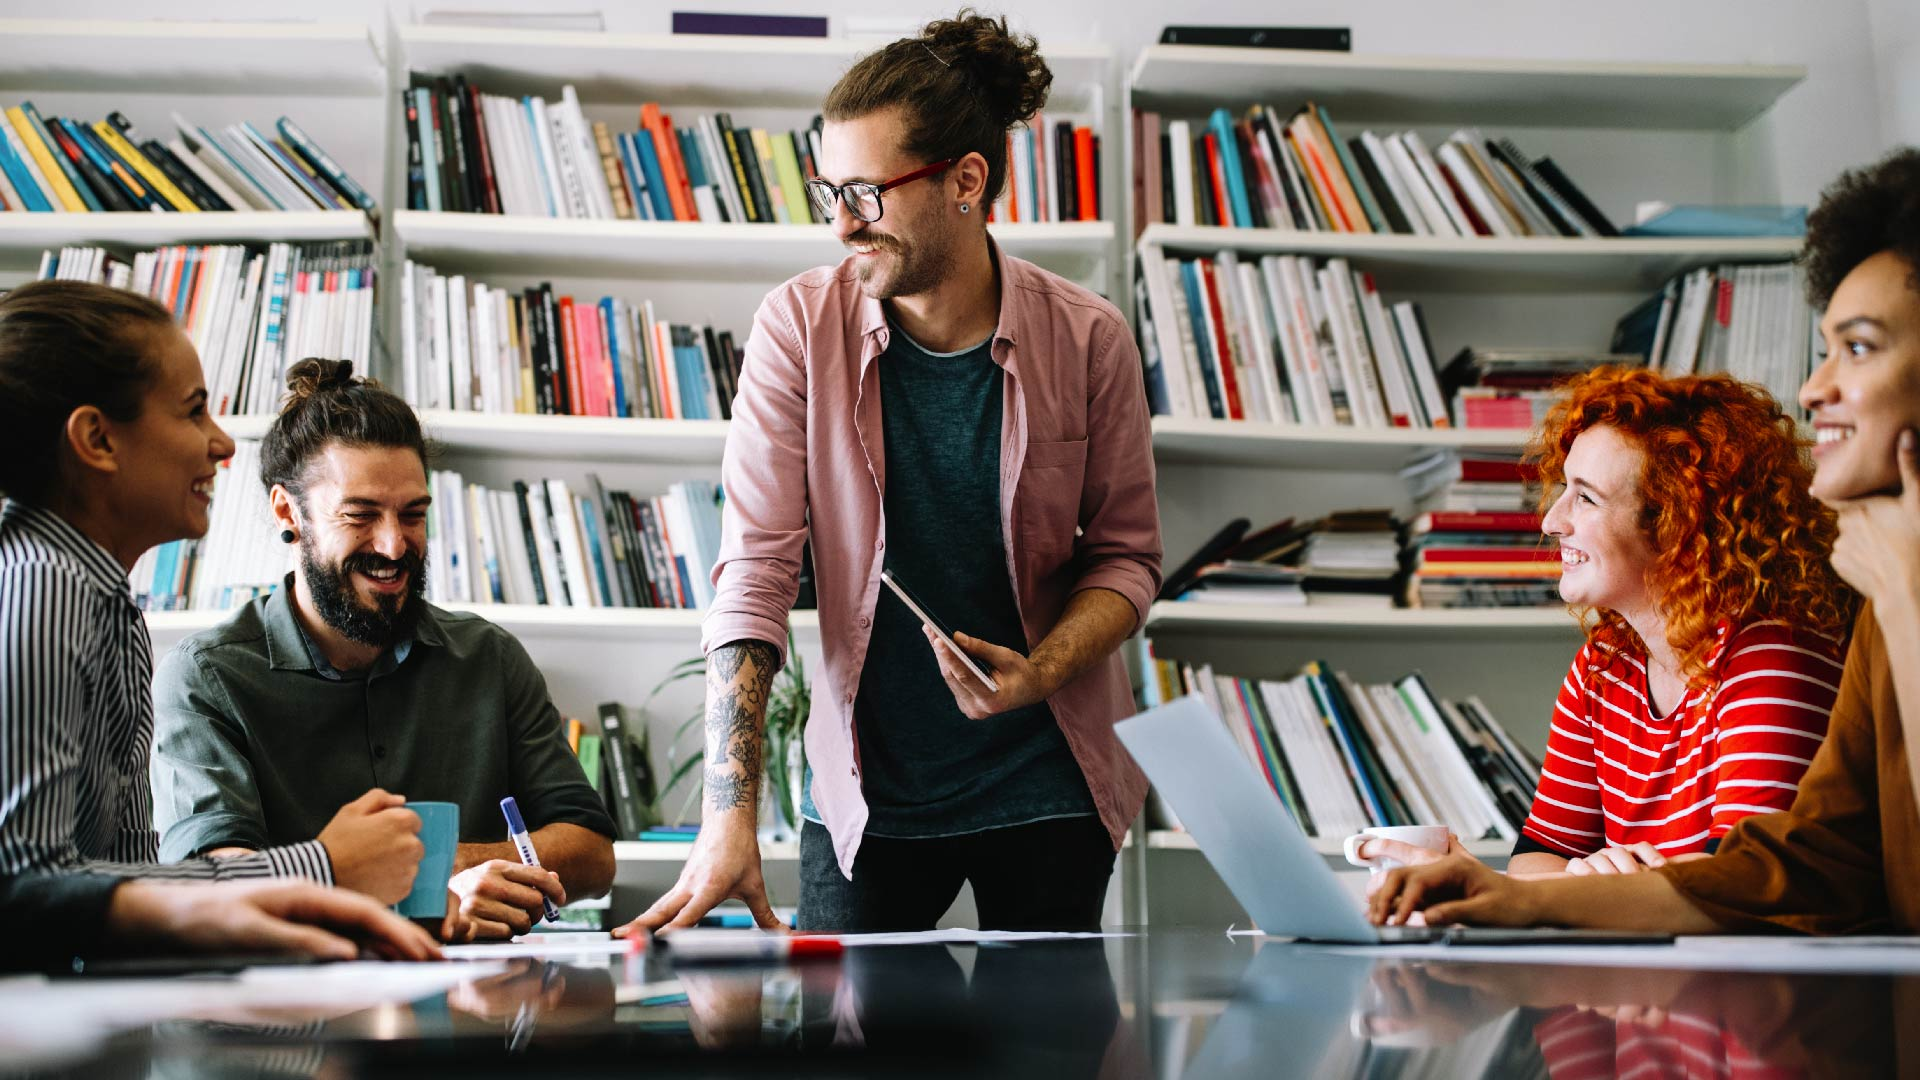 6 Mistakes to Avoid When Working with Subject Matter Experts